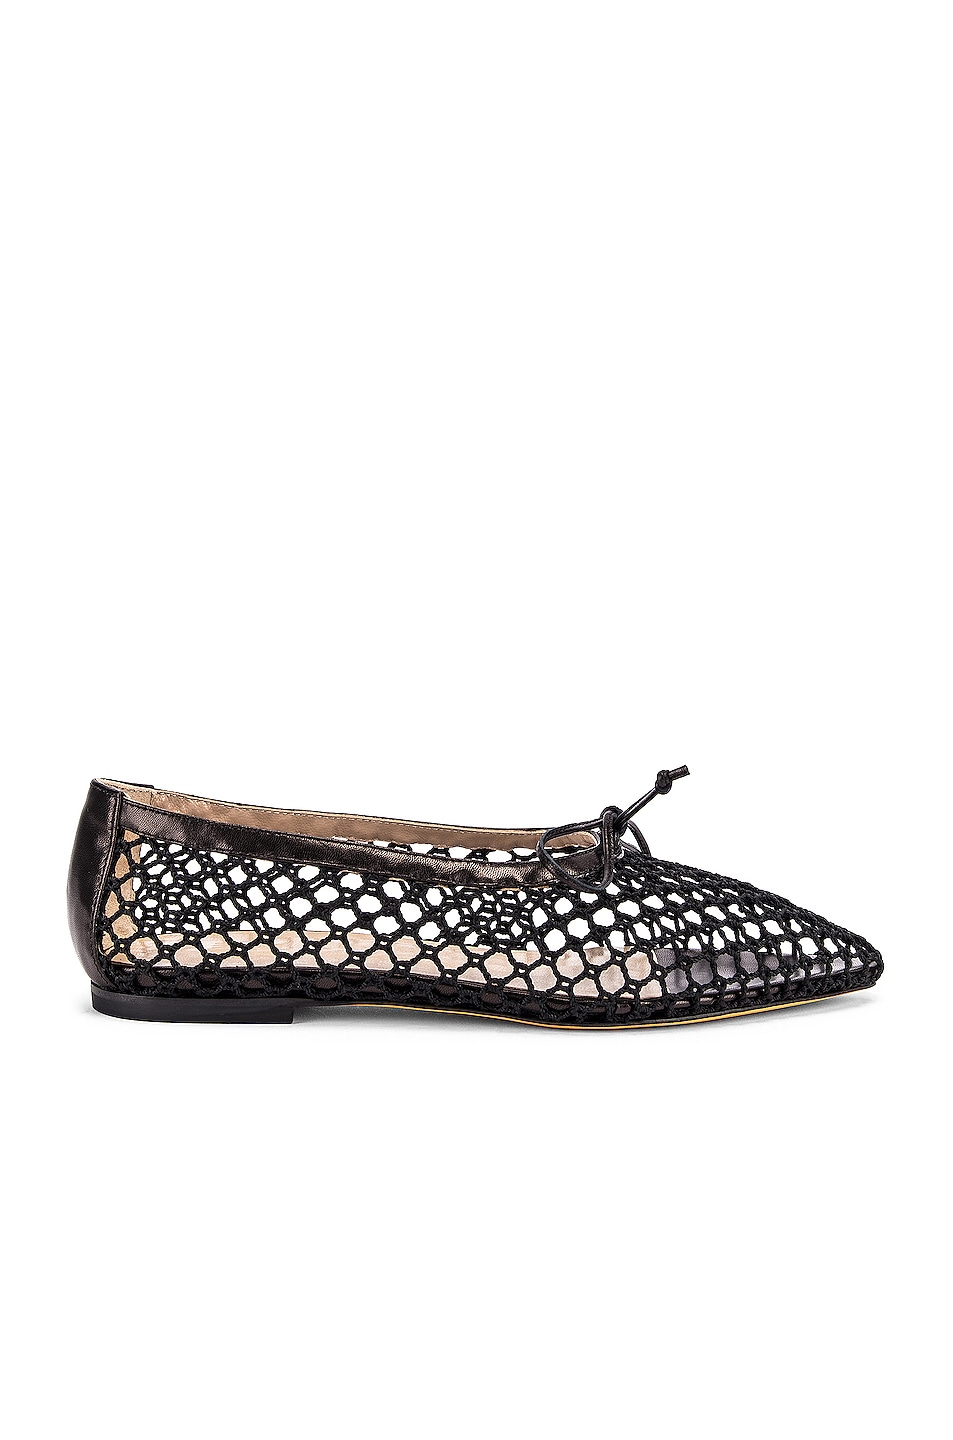 Image 1 of Maryam Nassir Zadeh Patio Loafer in Black